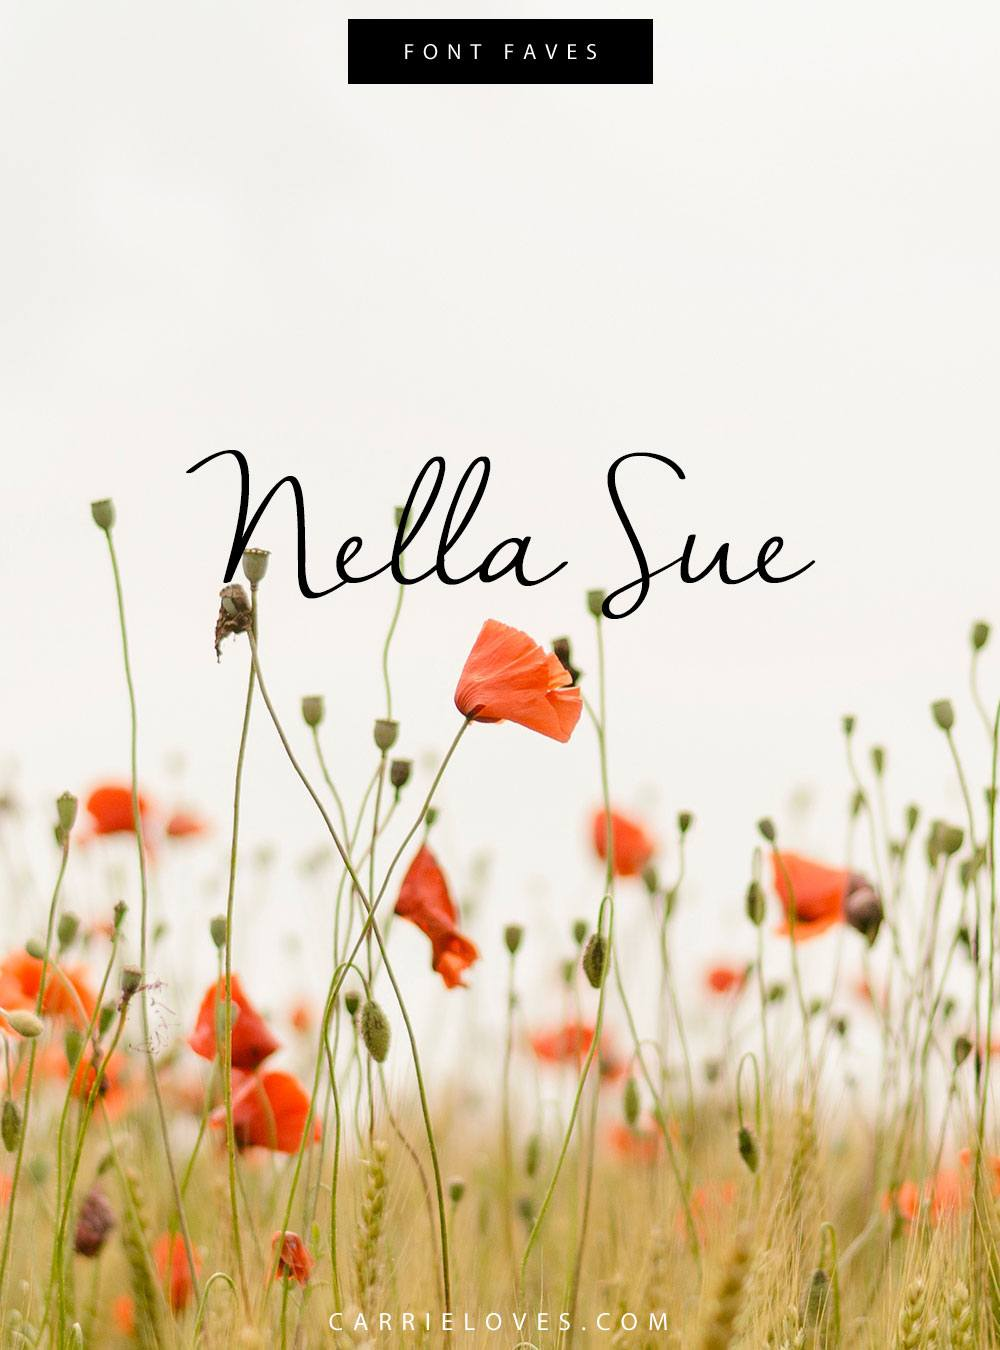 Font Faves Nella Sue - Carrie Loves Blog